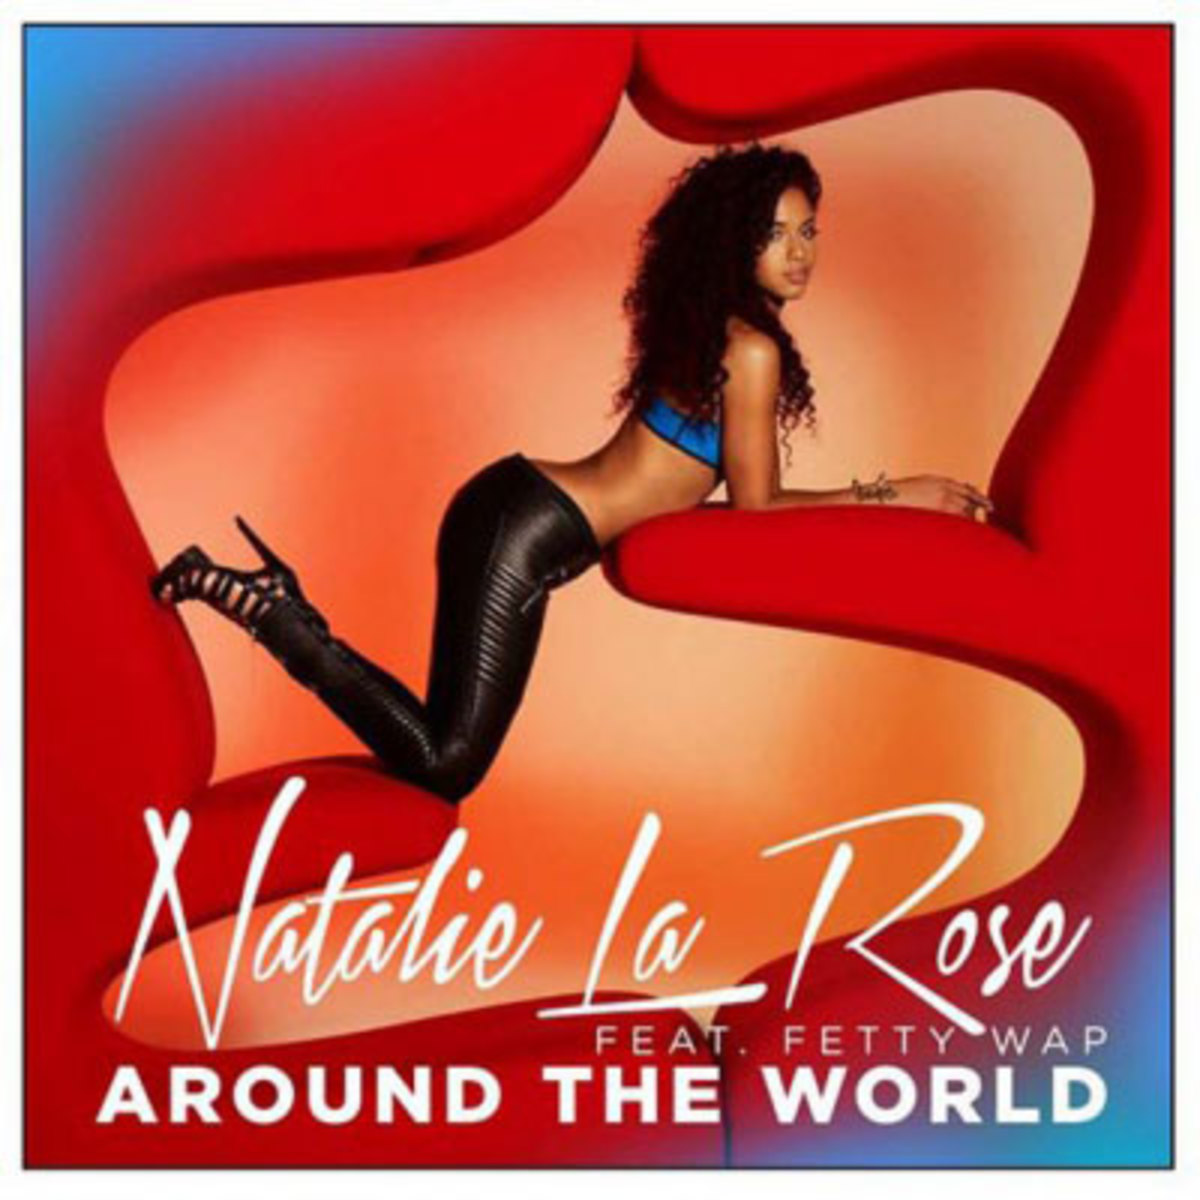 natalie-la-rose-around-the-world.jpg